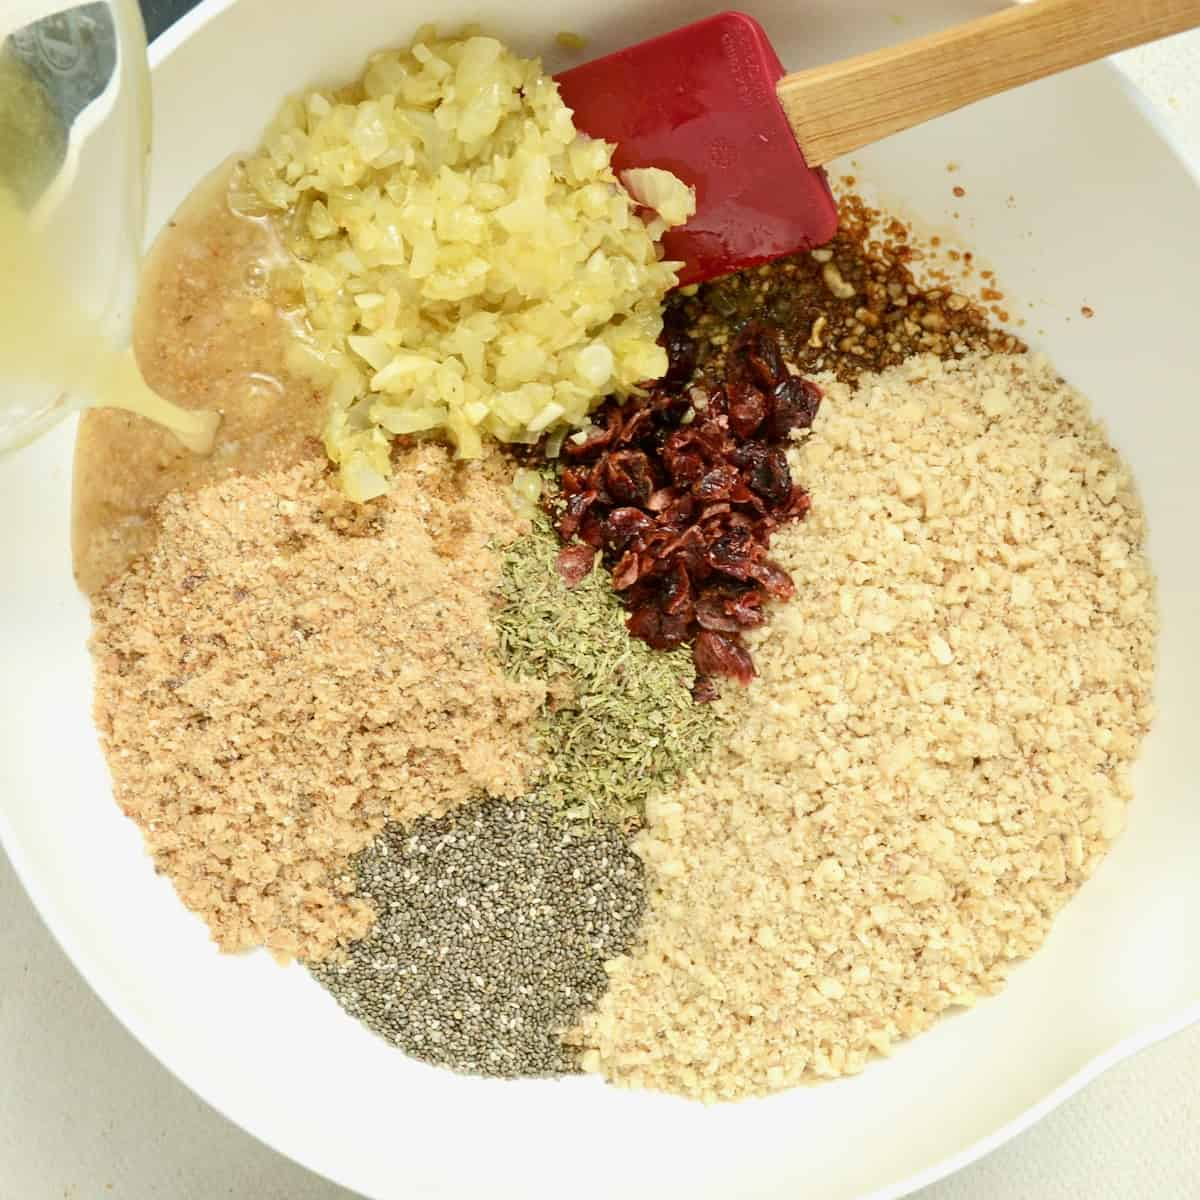 The nuts, now ground and the onions finely chopped and sauted, are combined with the other ingredients in a bowl.